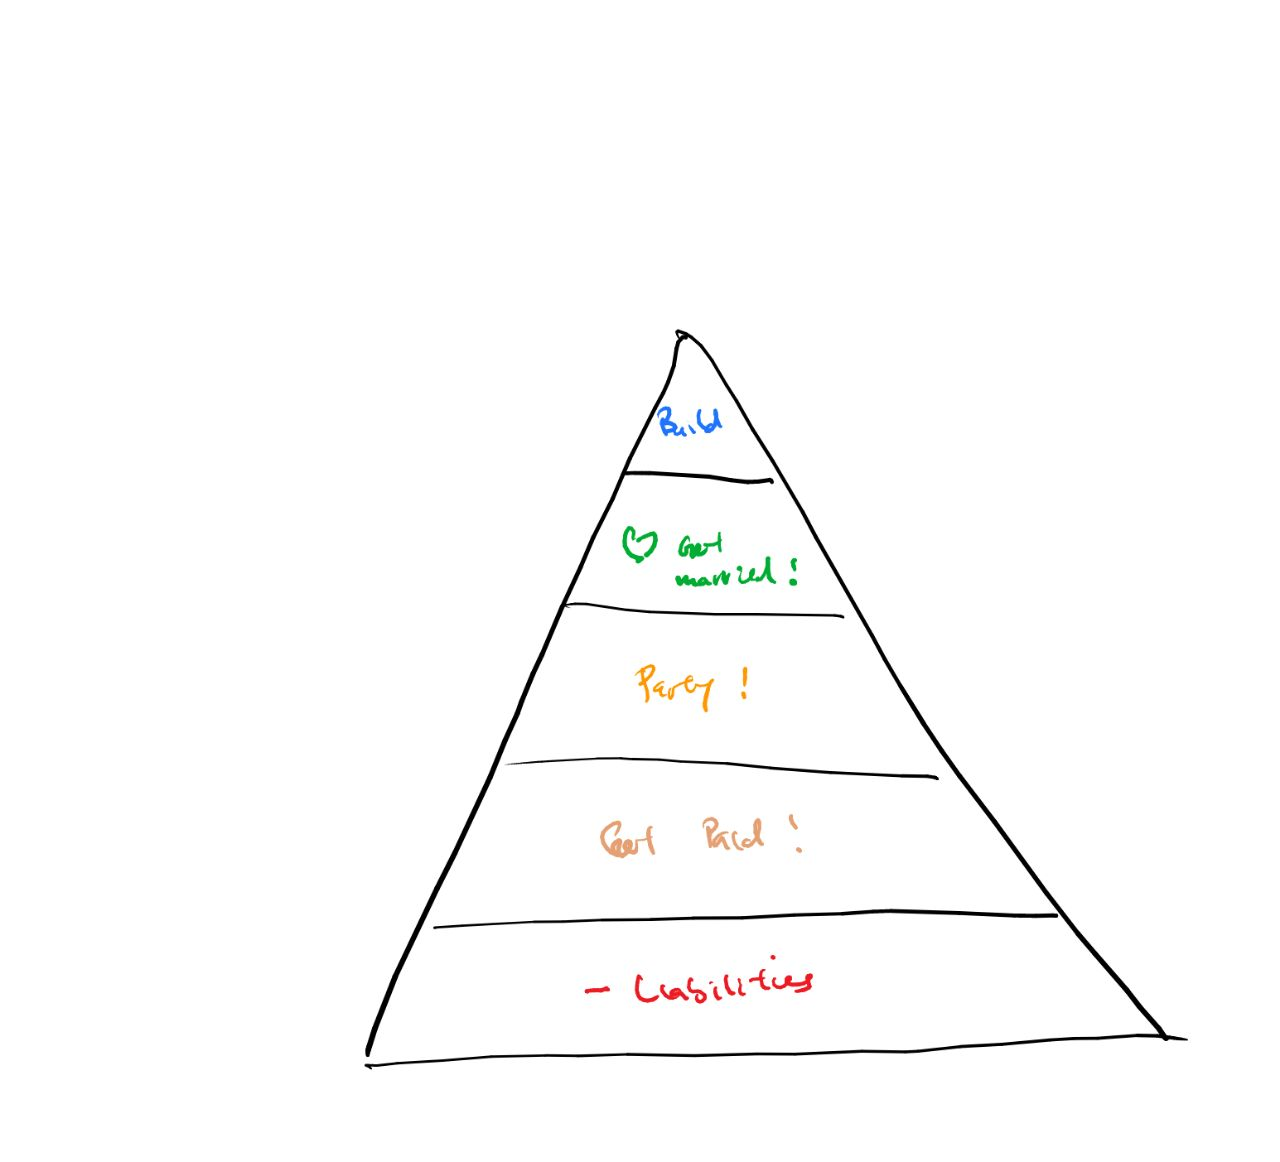 The bootstrapper's hierarchy of needs